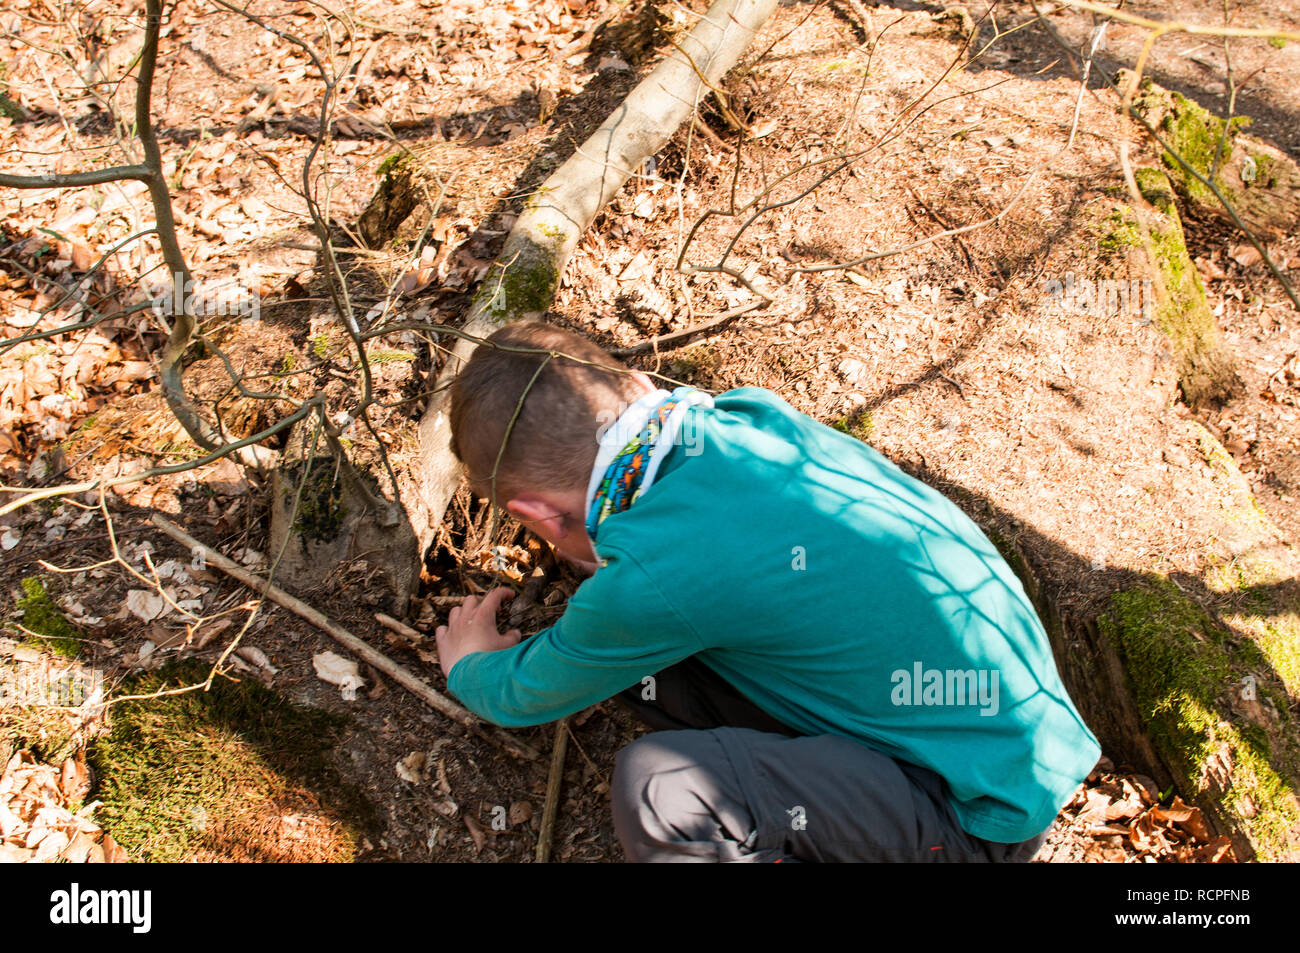 boy looking for a geocache in a crevice in the rock - Stock Image